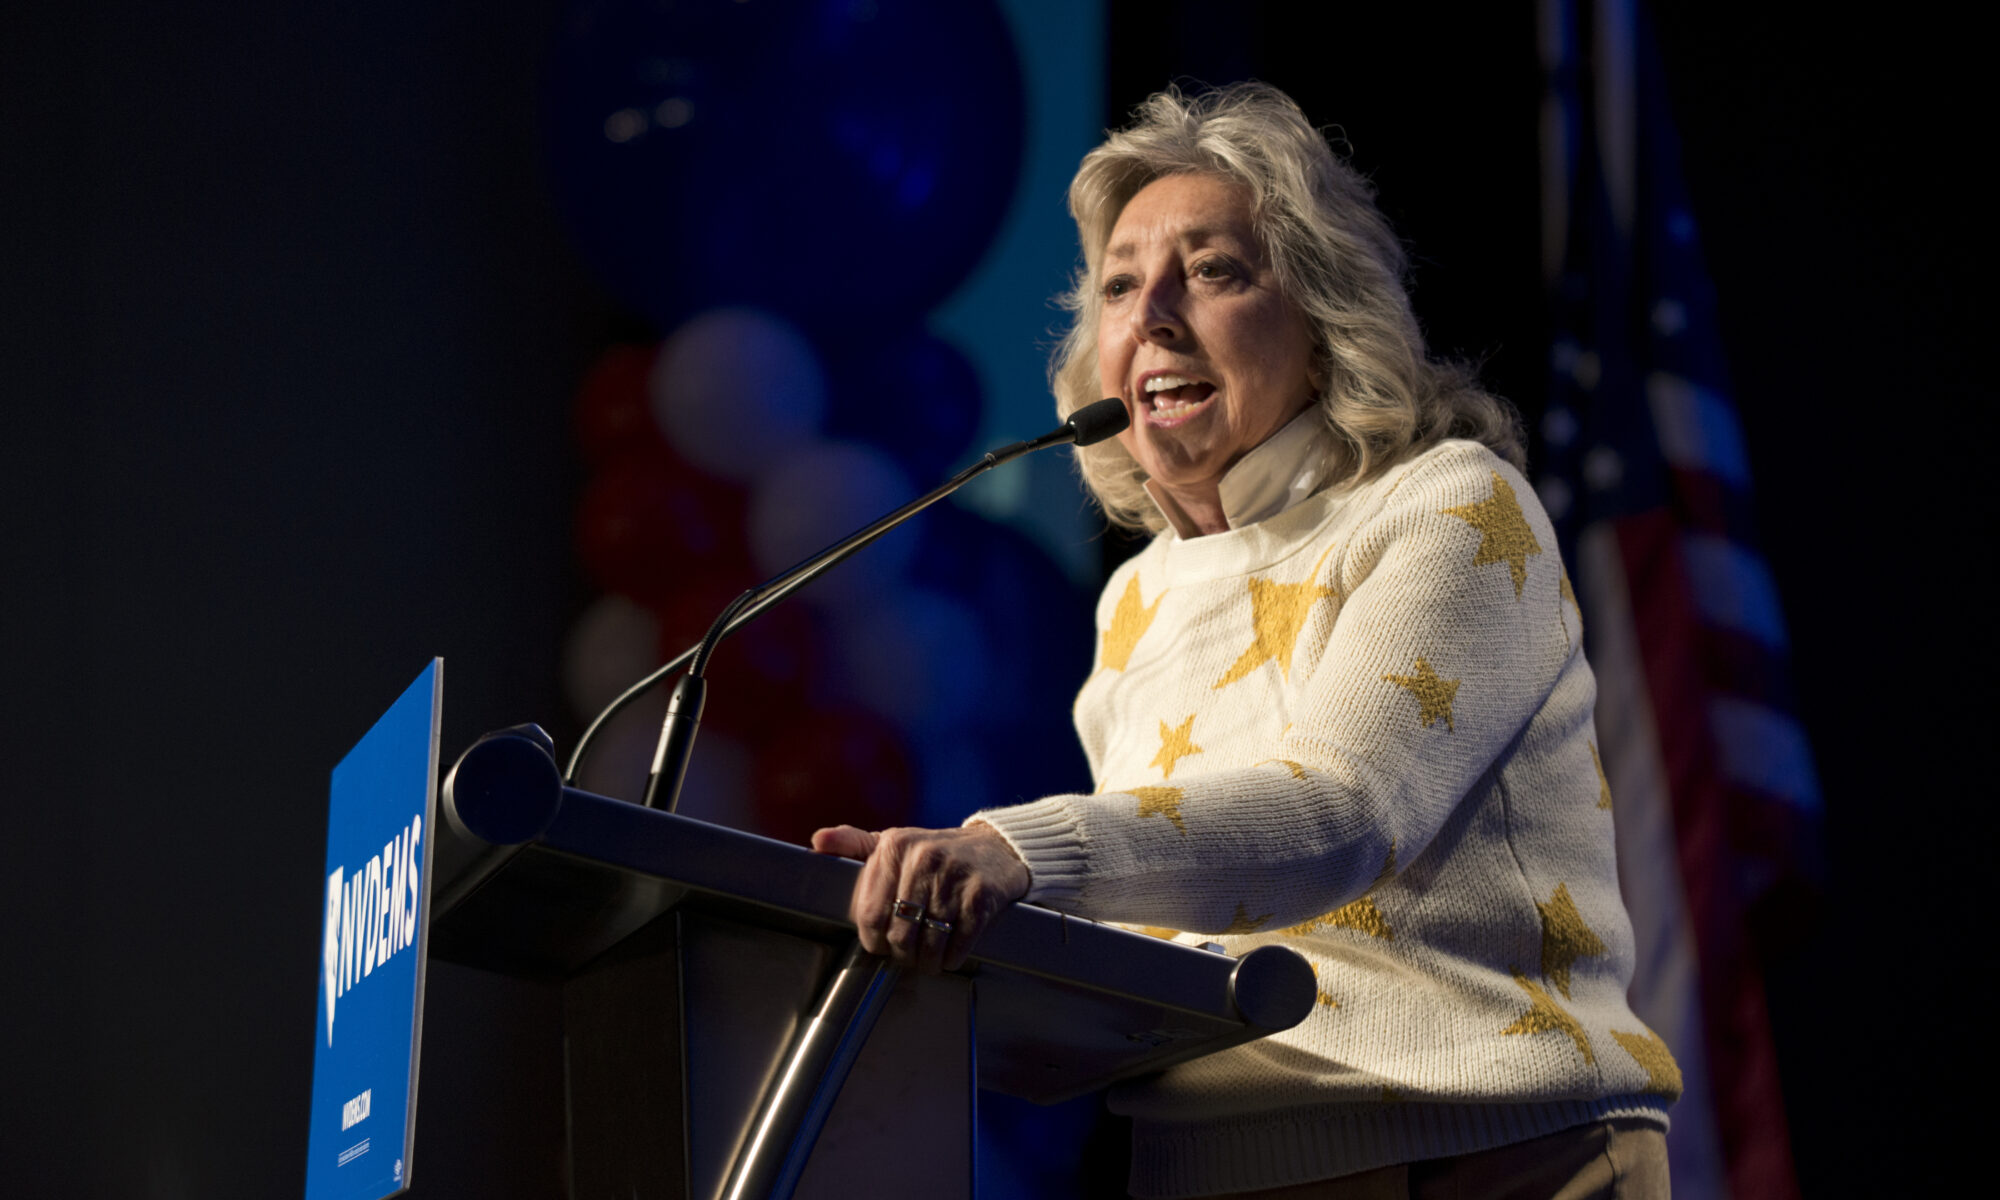 Dina Titus speaks during the Nevada Democratic Party election night event at Caesar Palace in Las Vegas on Tuesday, Nov. 6, 2018.